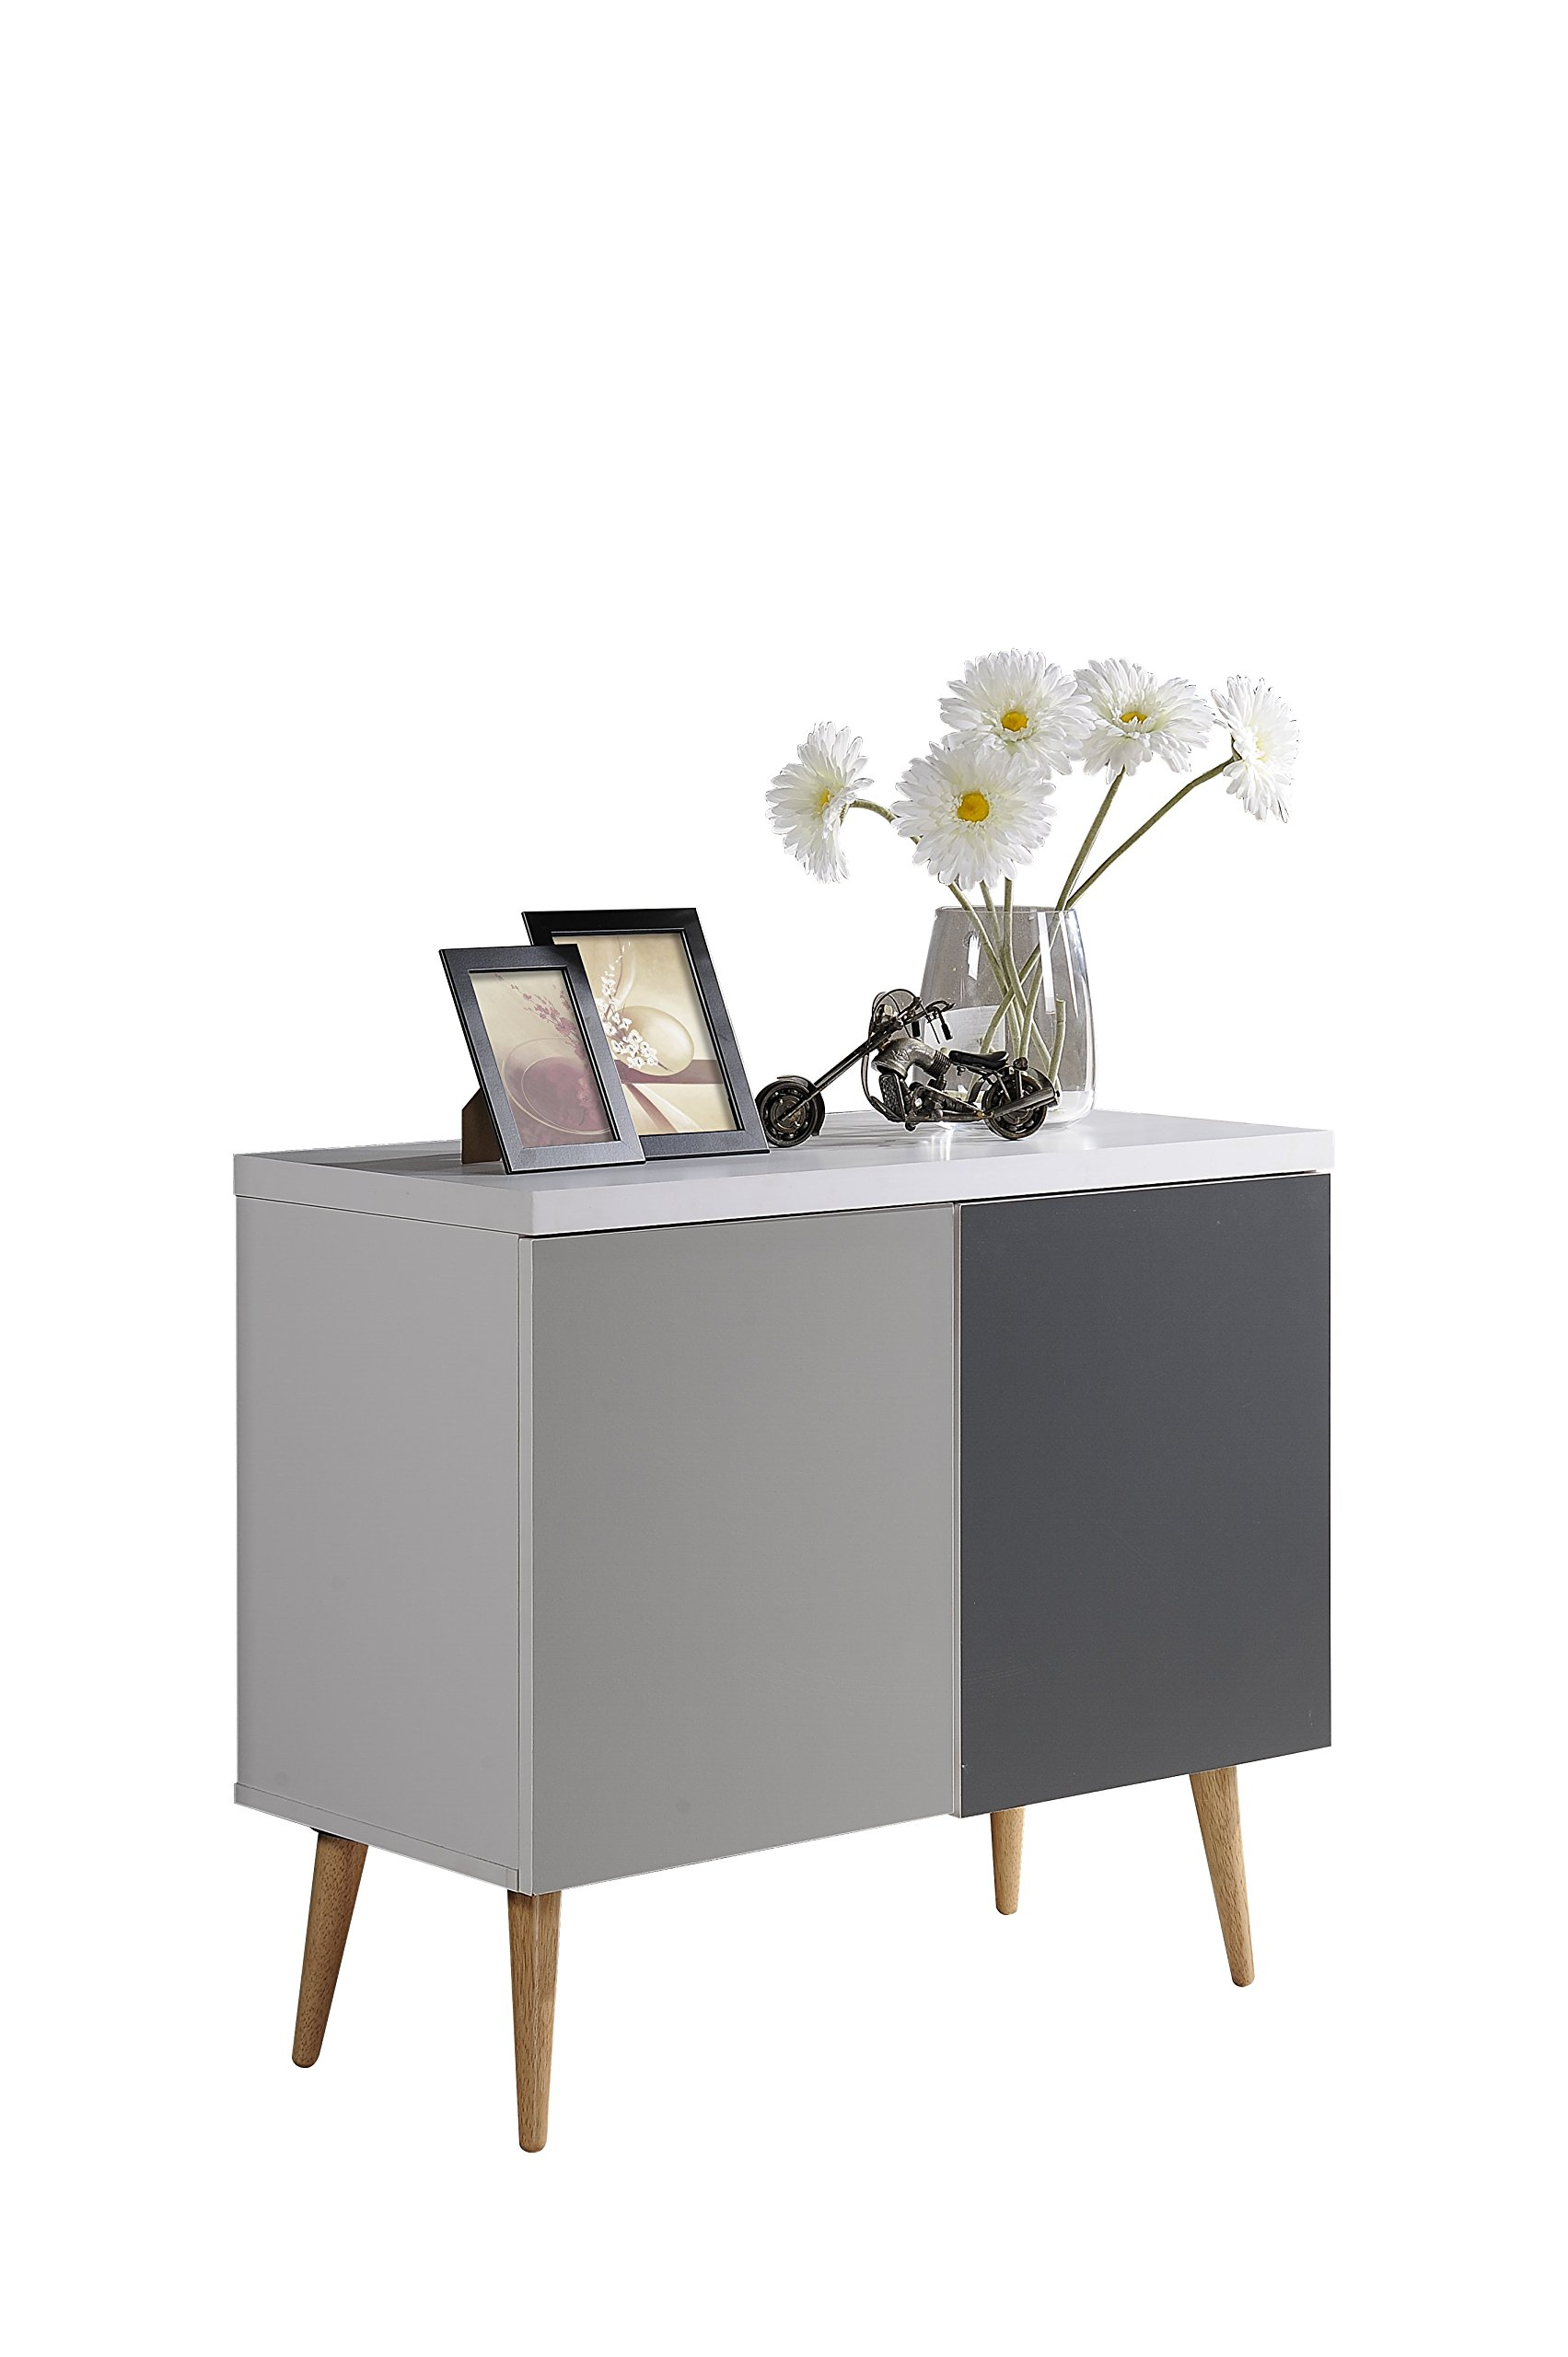 Hodedah HI690 Credenza Entry Way Accent Table, White-Grey